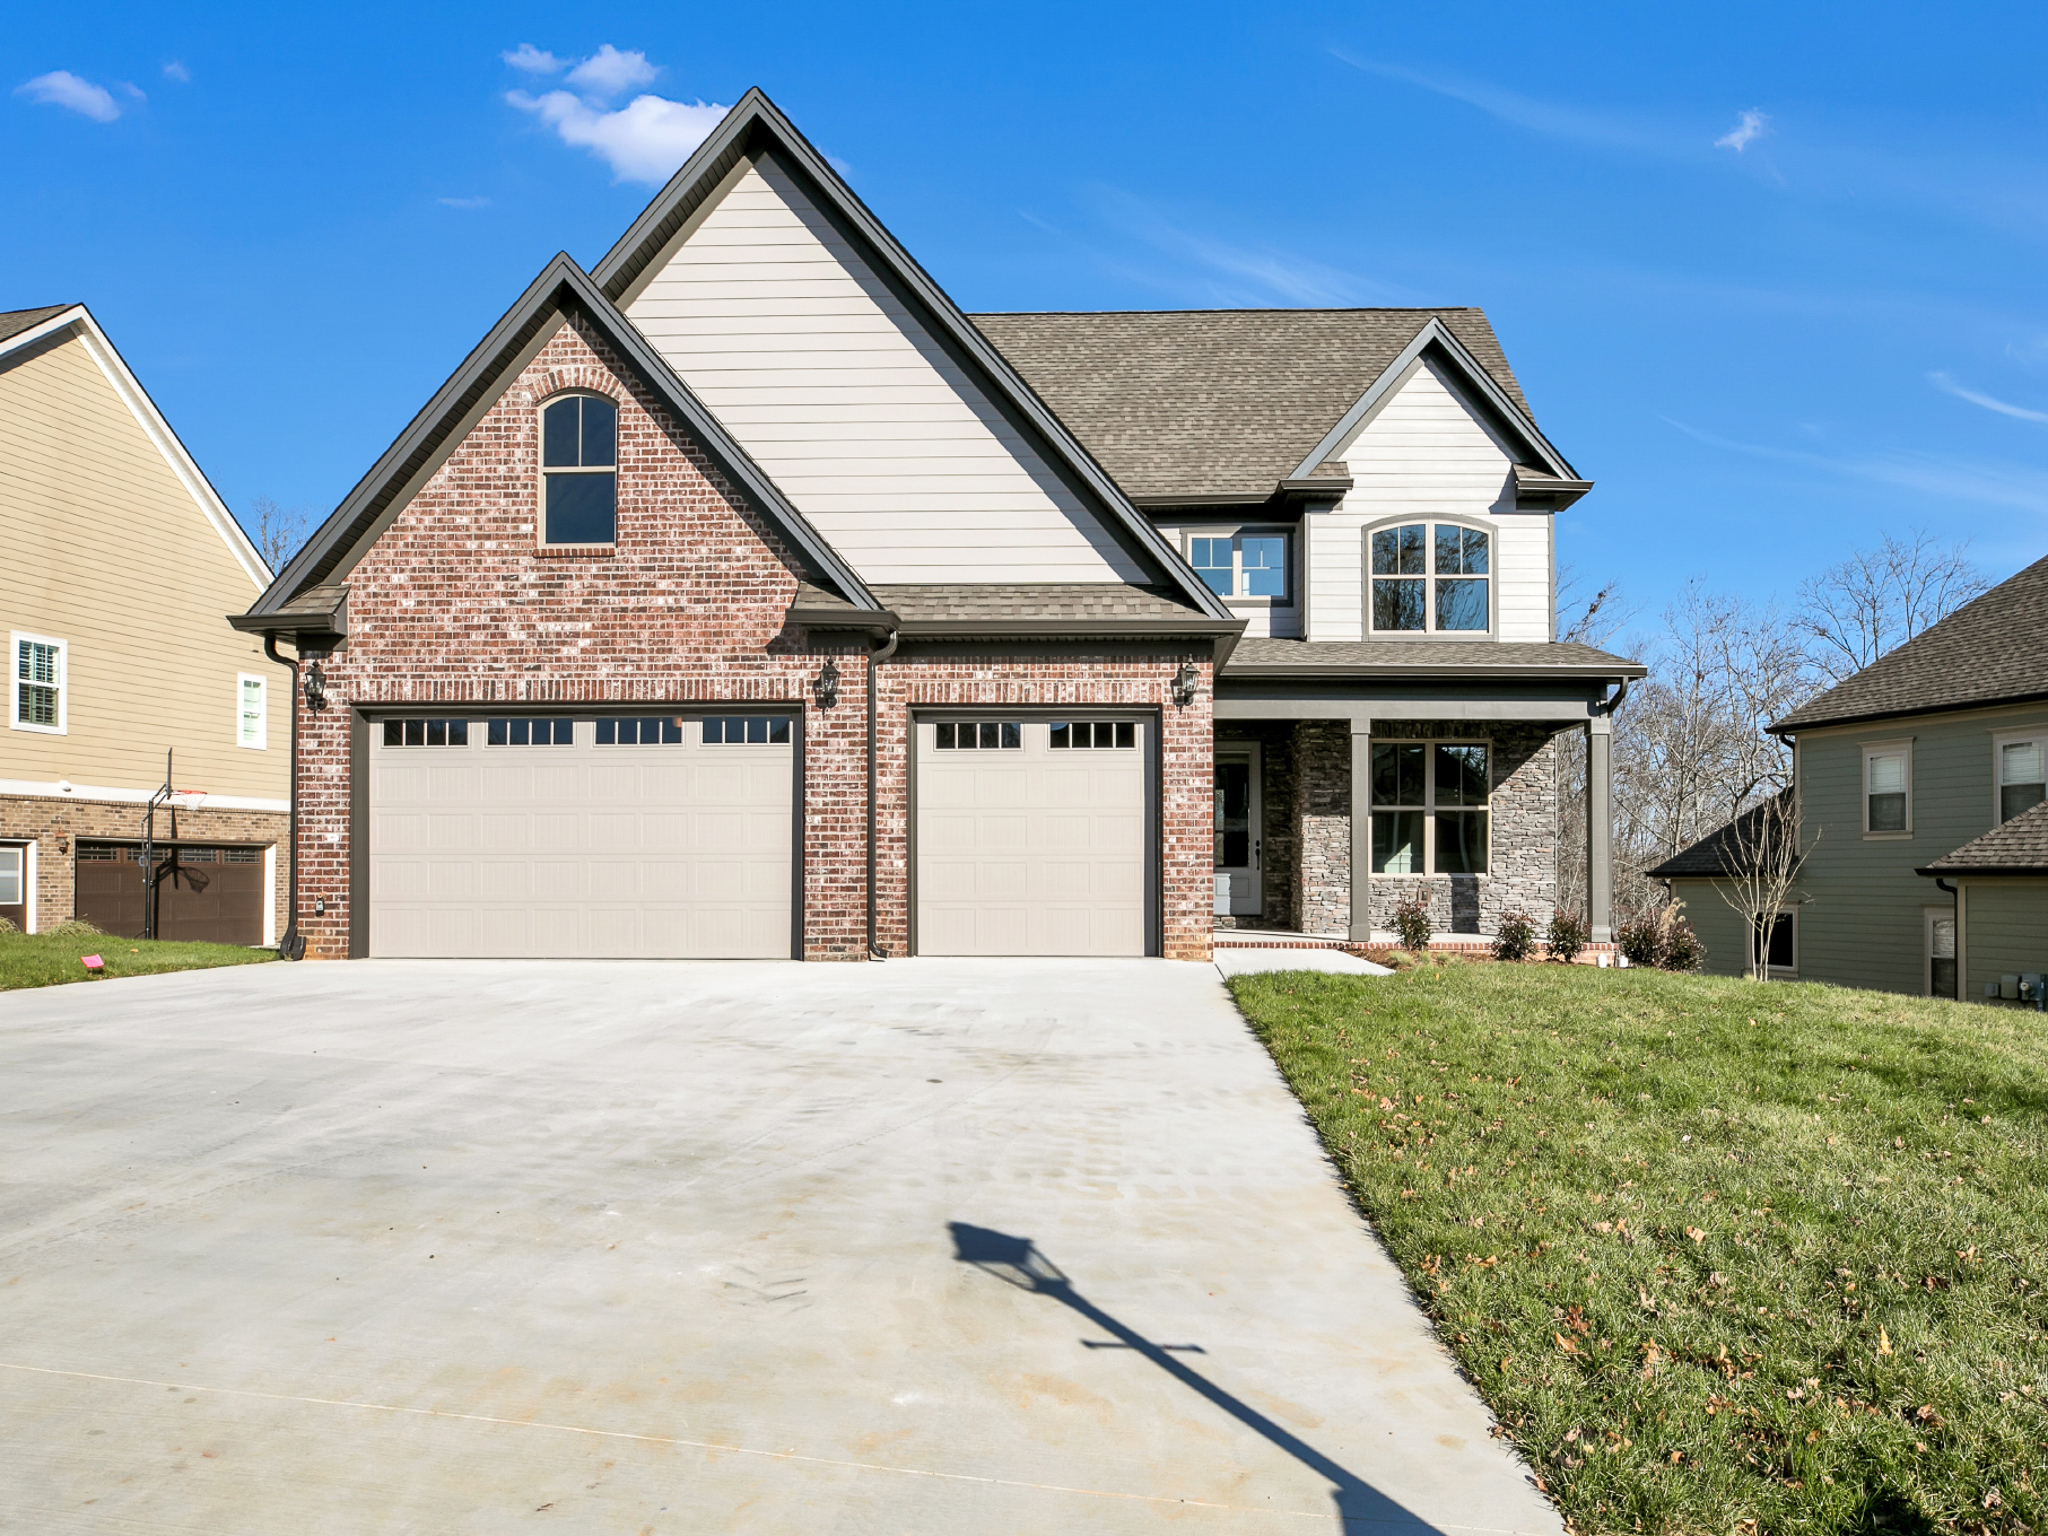 10062 Meadowstone Drive - Bentwood Cove Subdivision